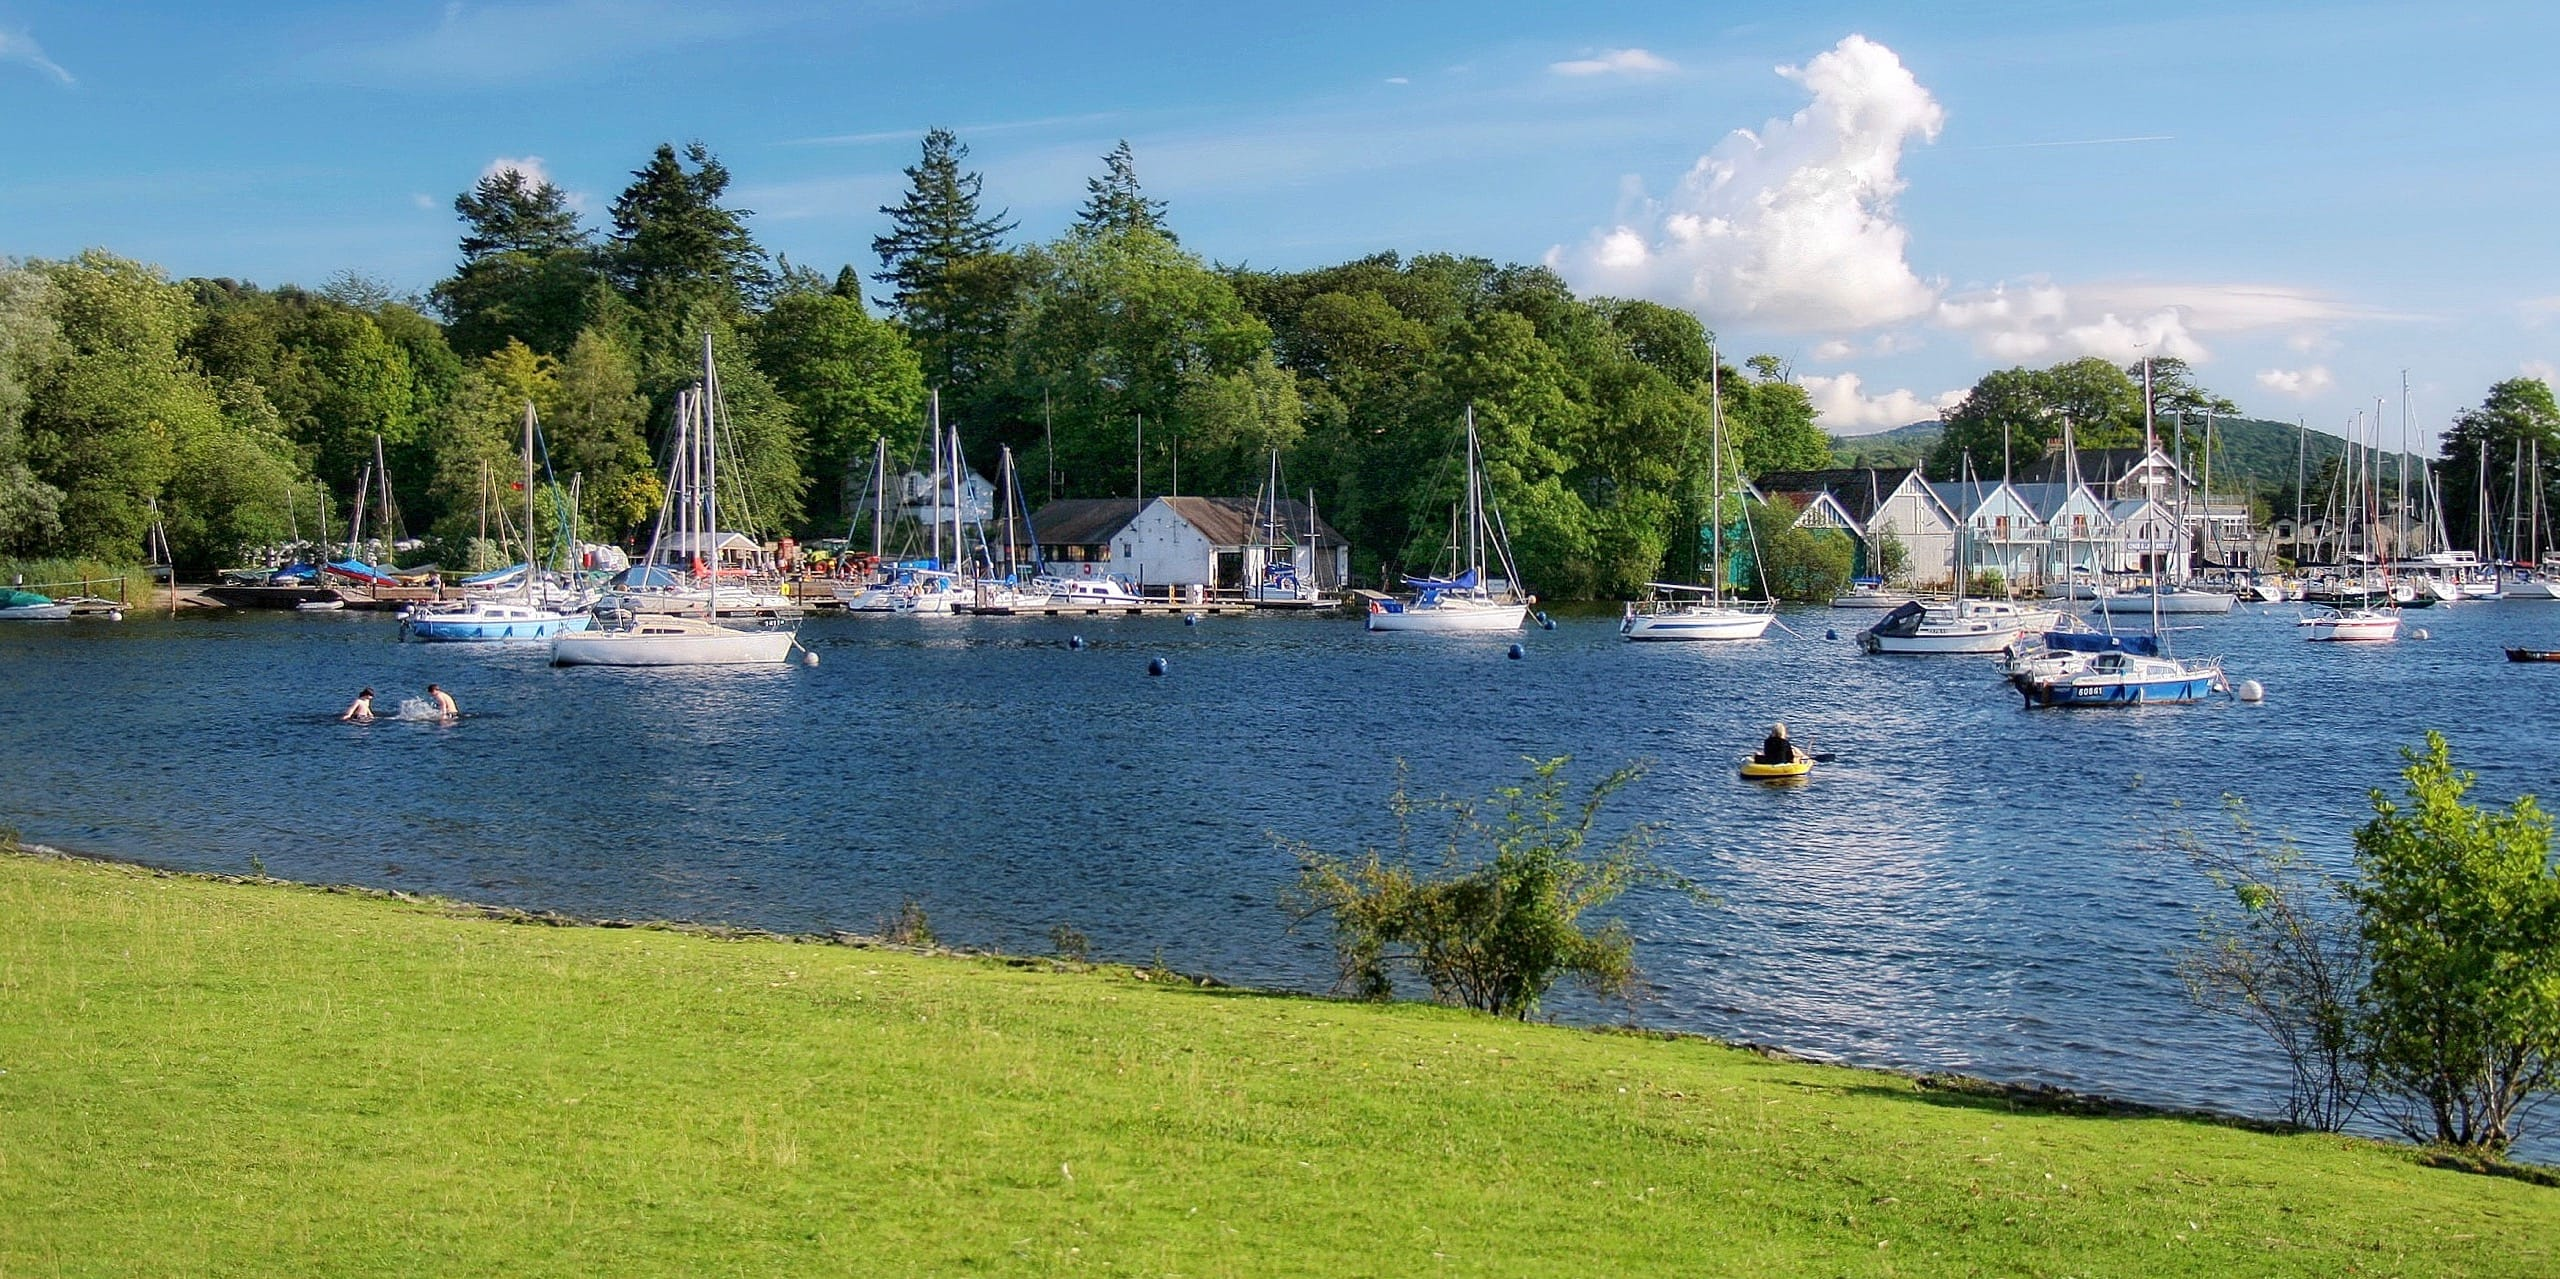 Things To Do In Bowness-on-Windermere